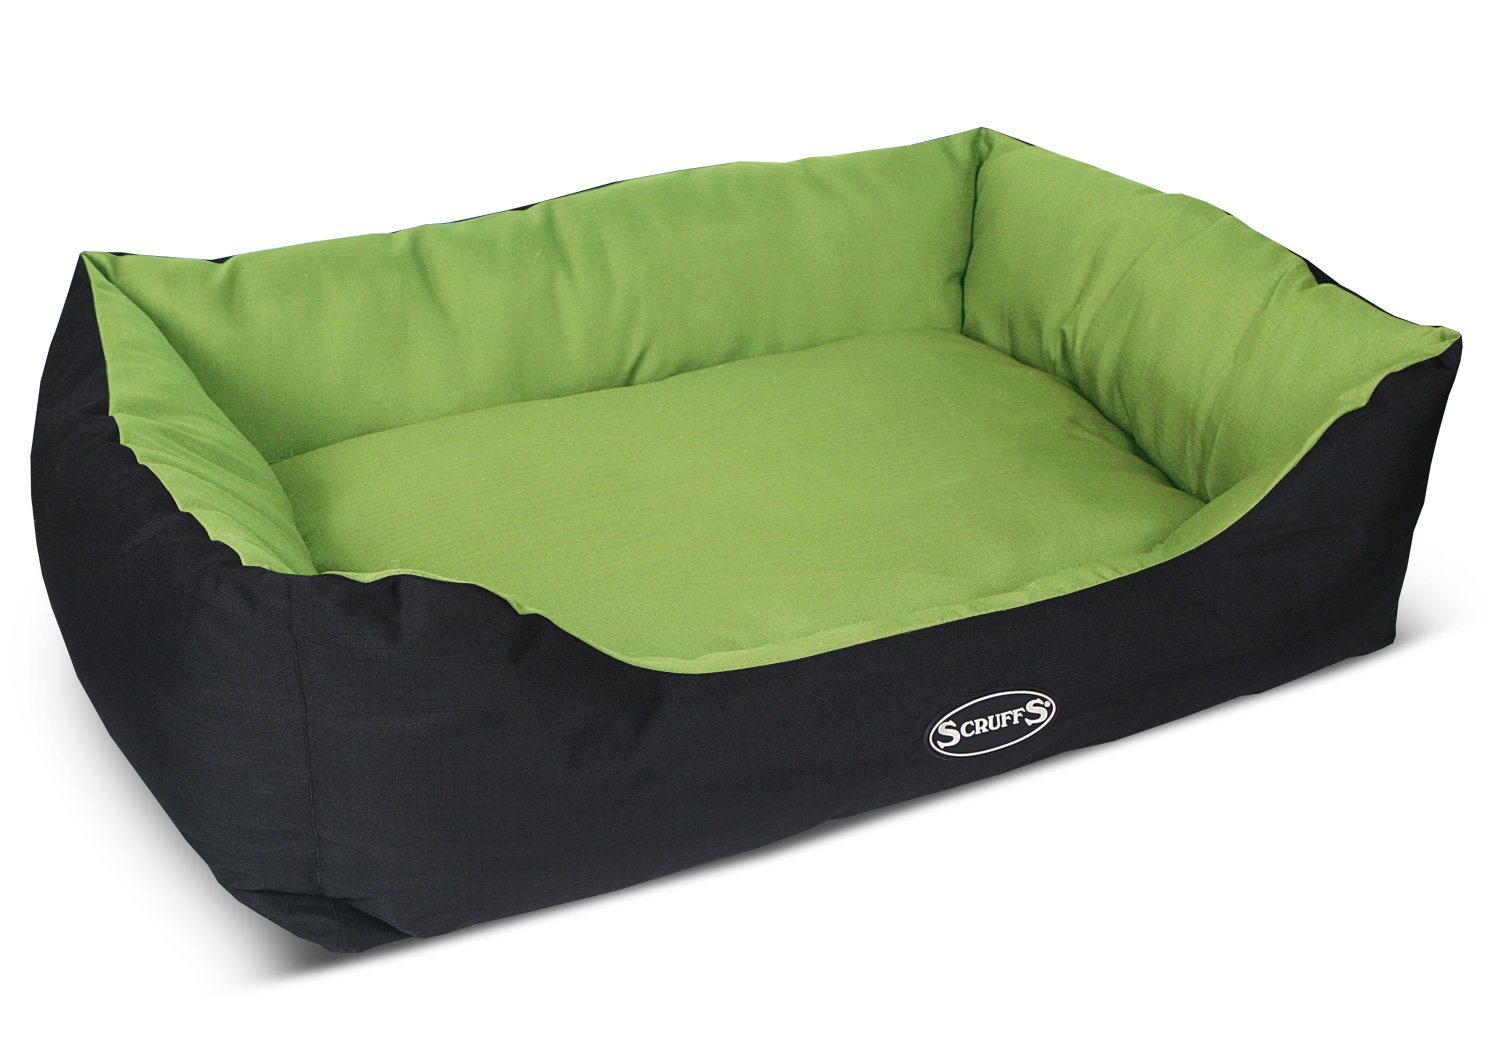 Scruffs Expedition Water Resistant Dog Bed, X-Large, 90 x 70 cm, Lime